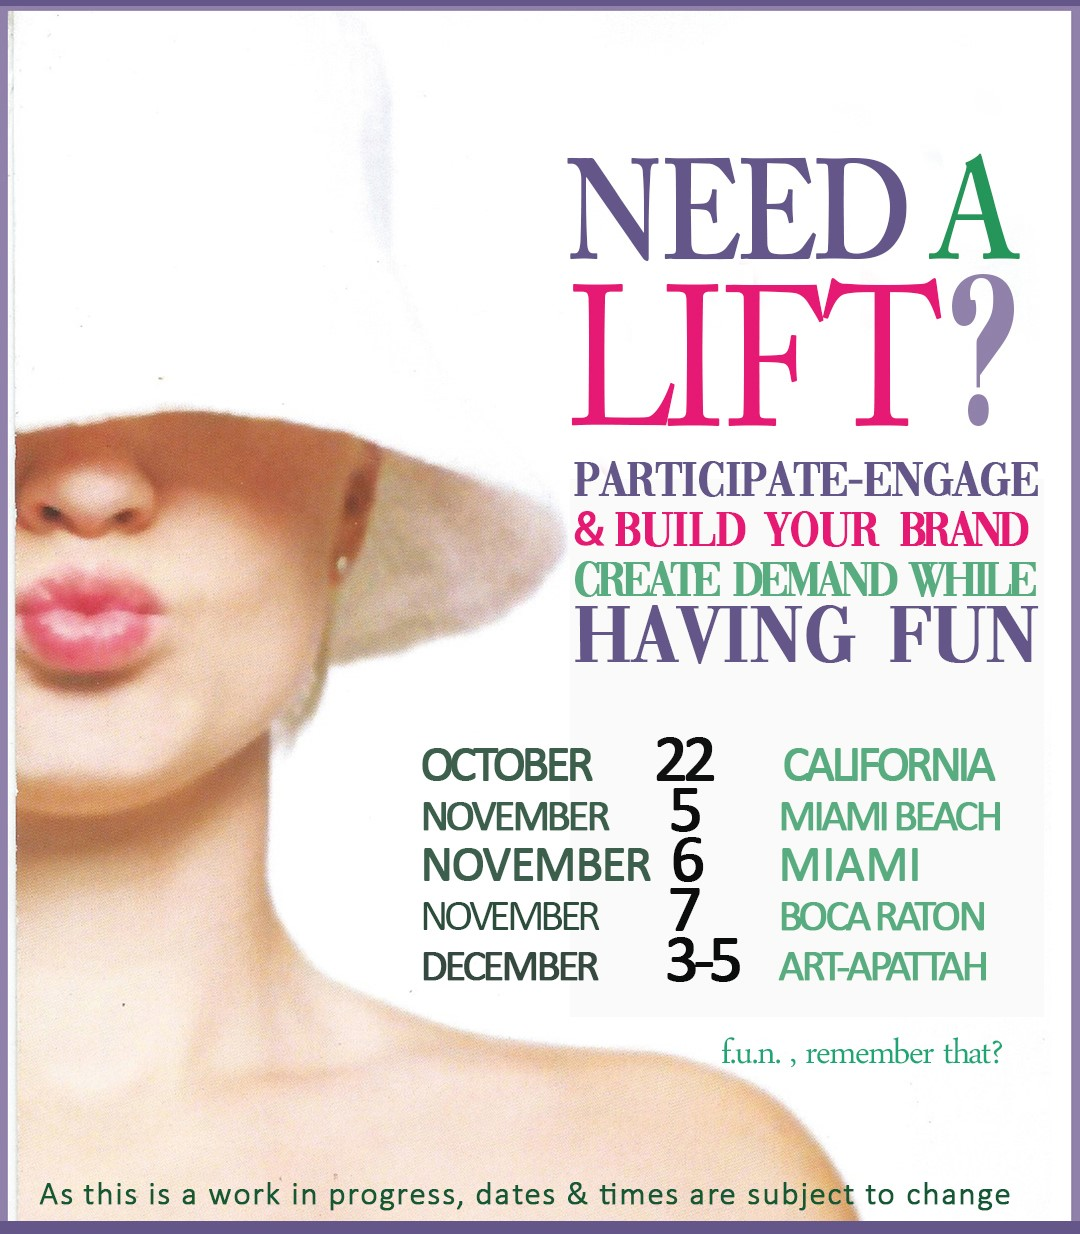 Need a Lift? PARTICIPATE-ENGAGE